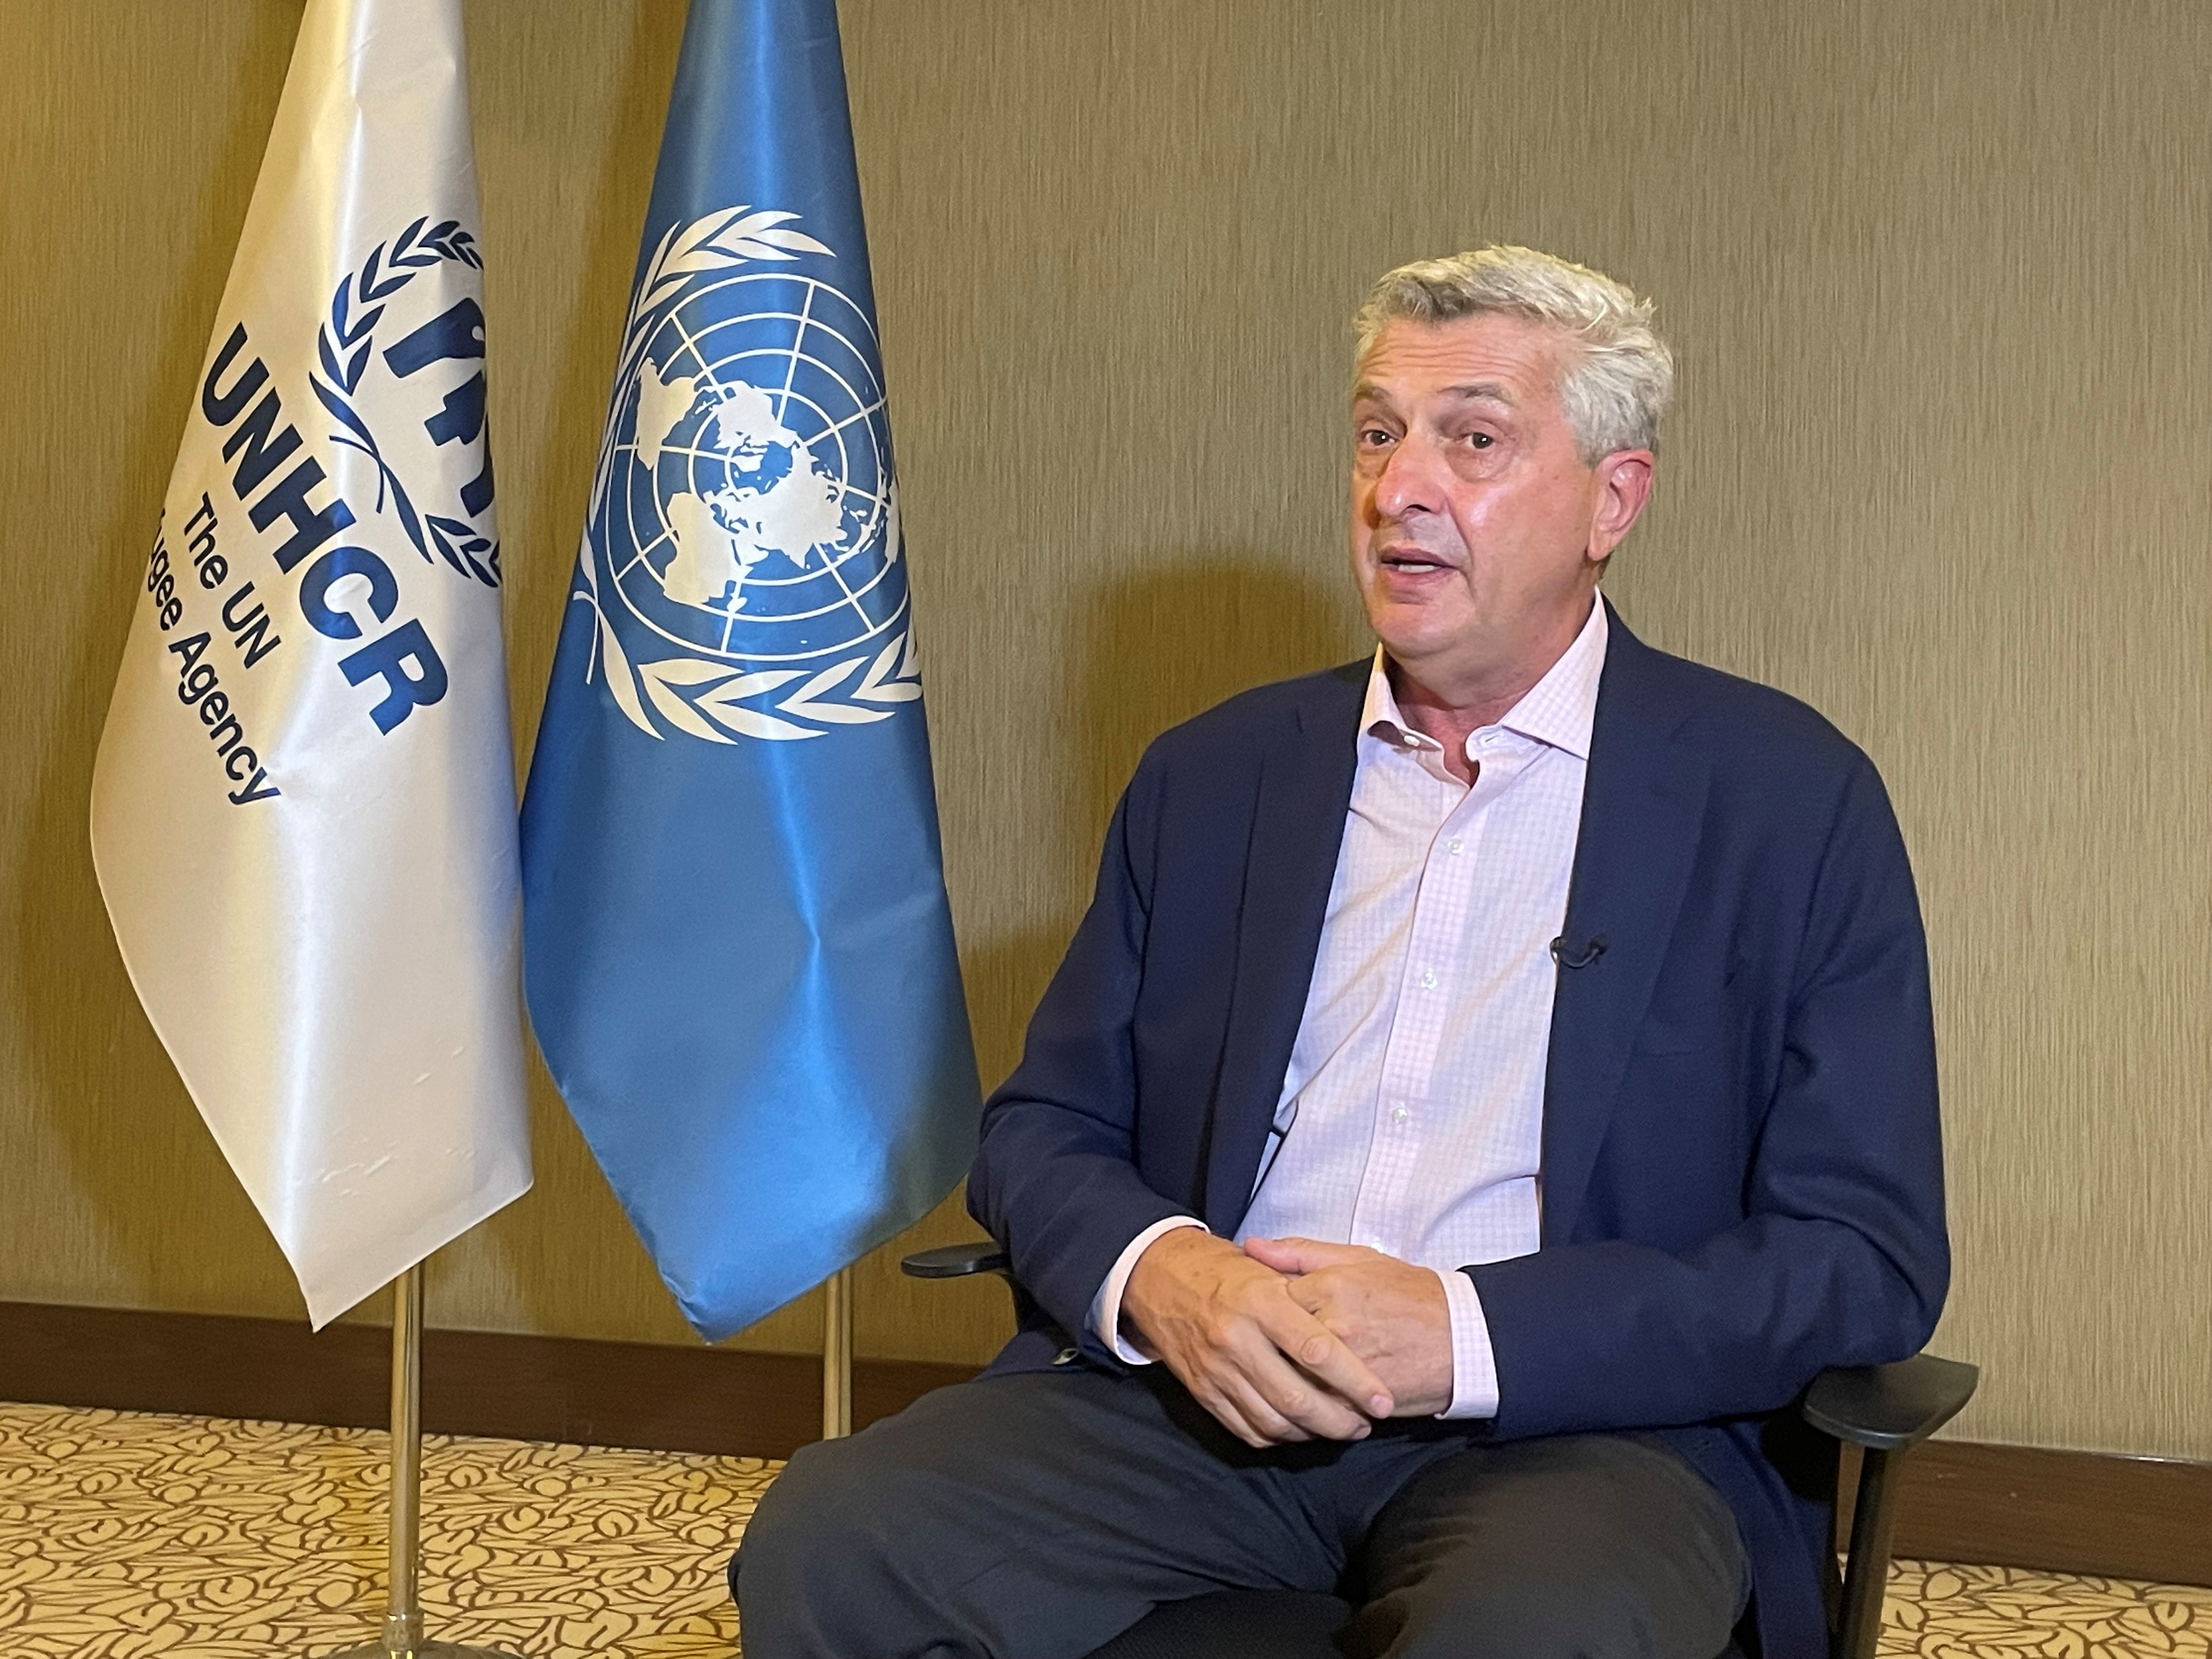 United Nations High Commissioner for Refugees (UNHCR) Filippo Grandi talks during an interview with Reuters in Gaziantep, Turkey September 10, 2021. REUTERS/Mehmet Emin Caliskan